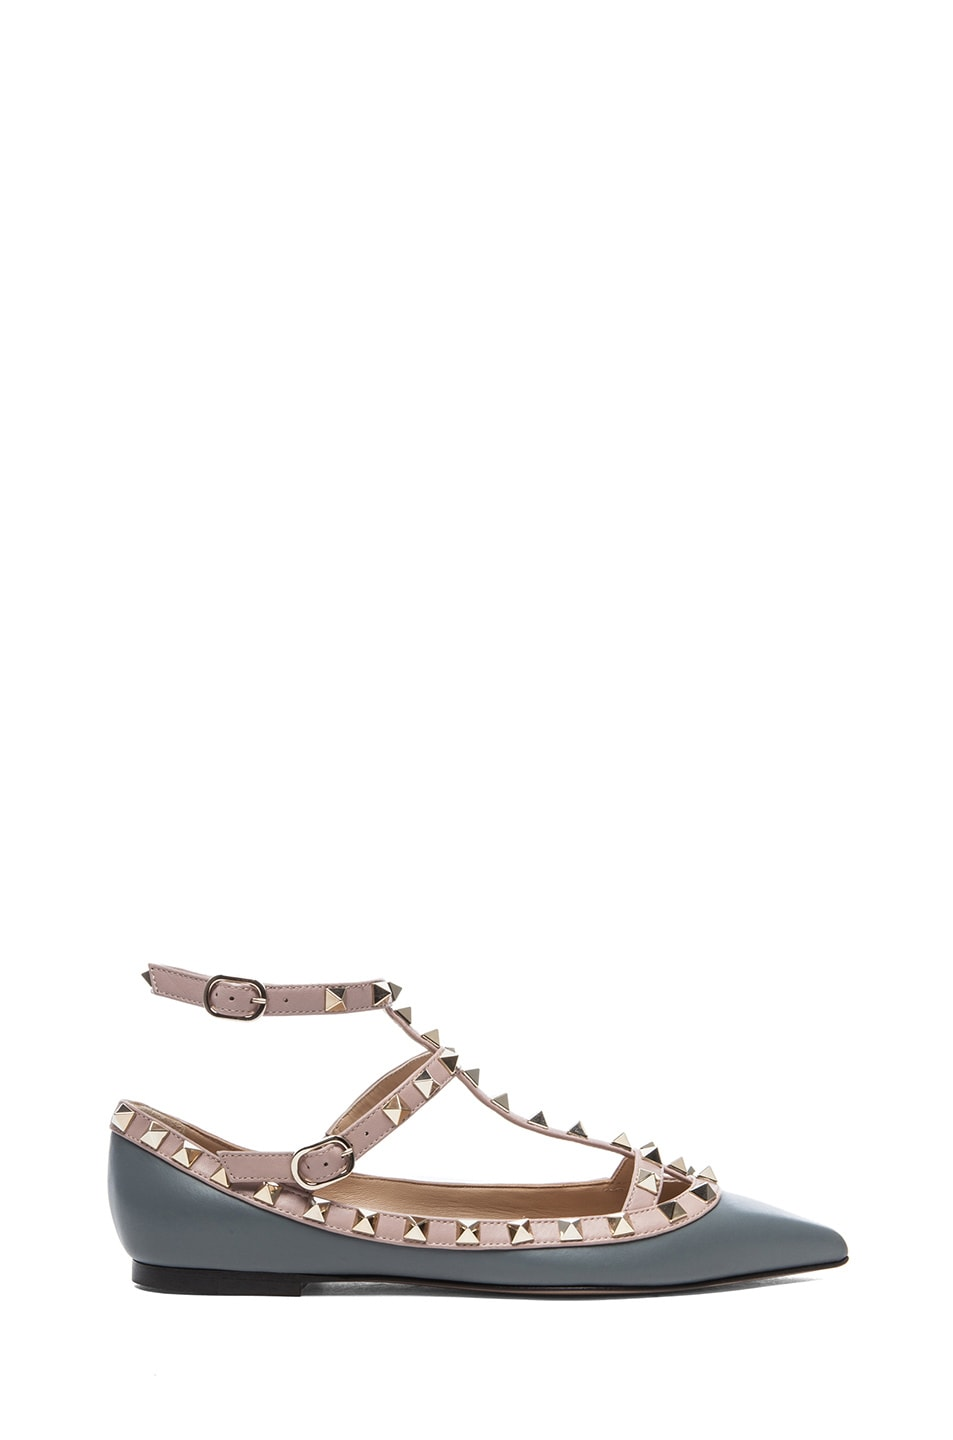 Image 1 of Valentino Rockstud Leather Ballerina Flats in Stone